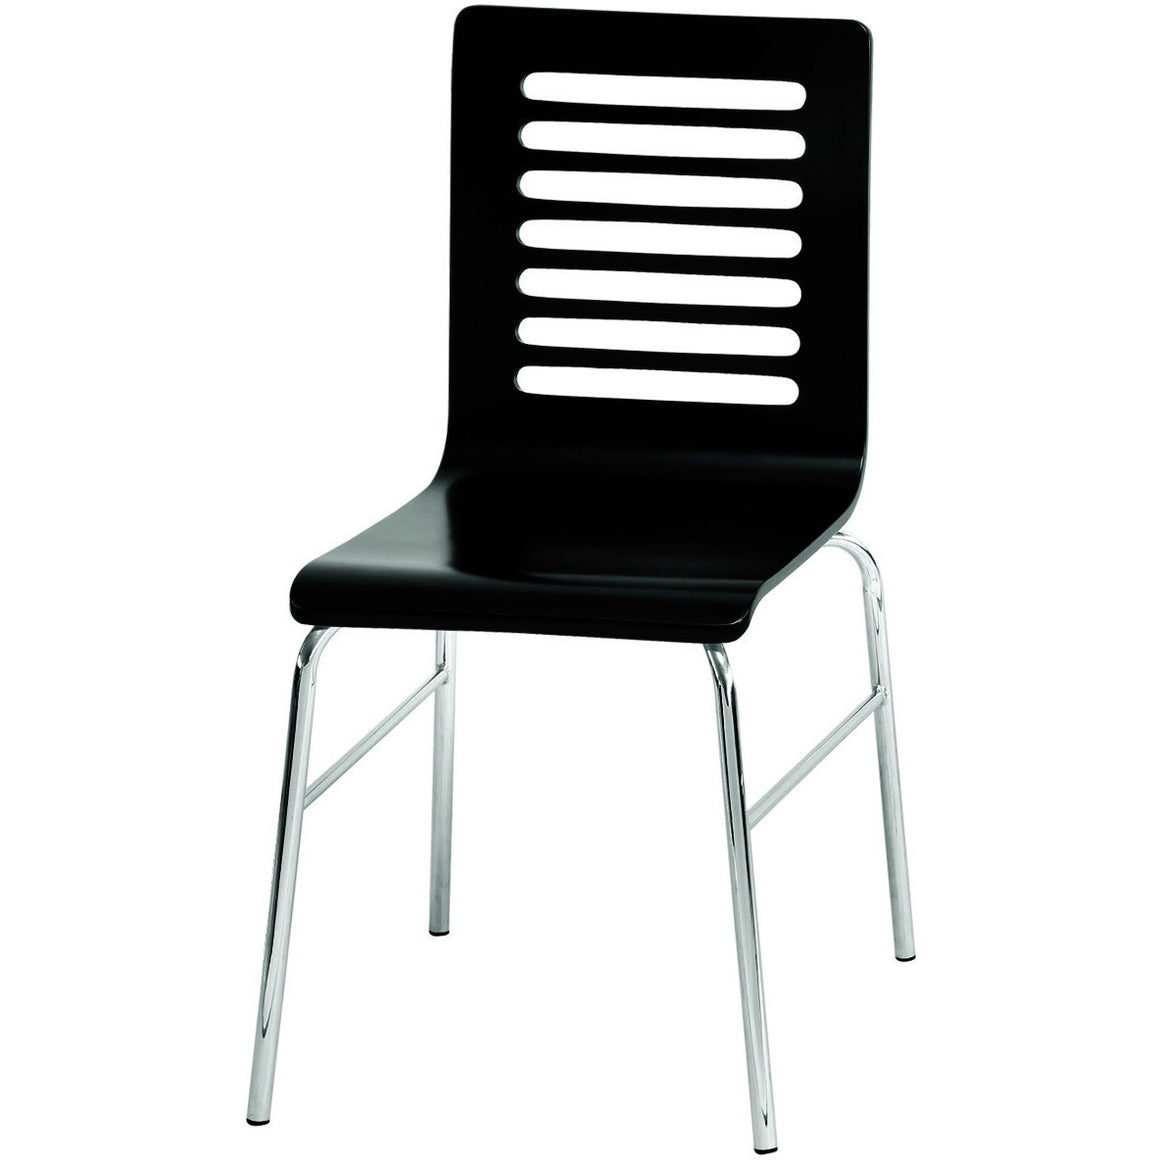 WoodForm 310, Chairs, Cammac, - Cammac